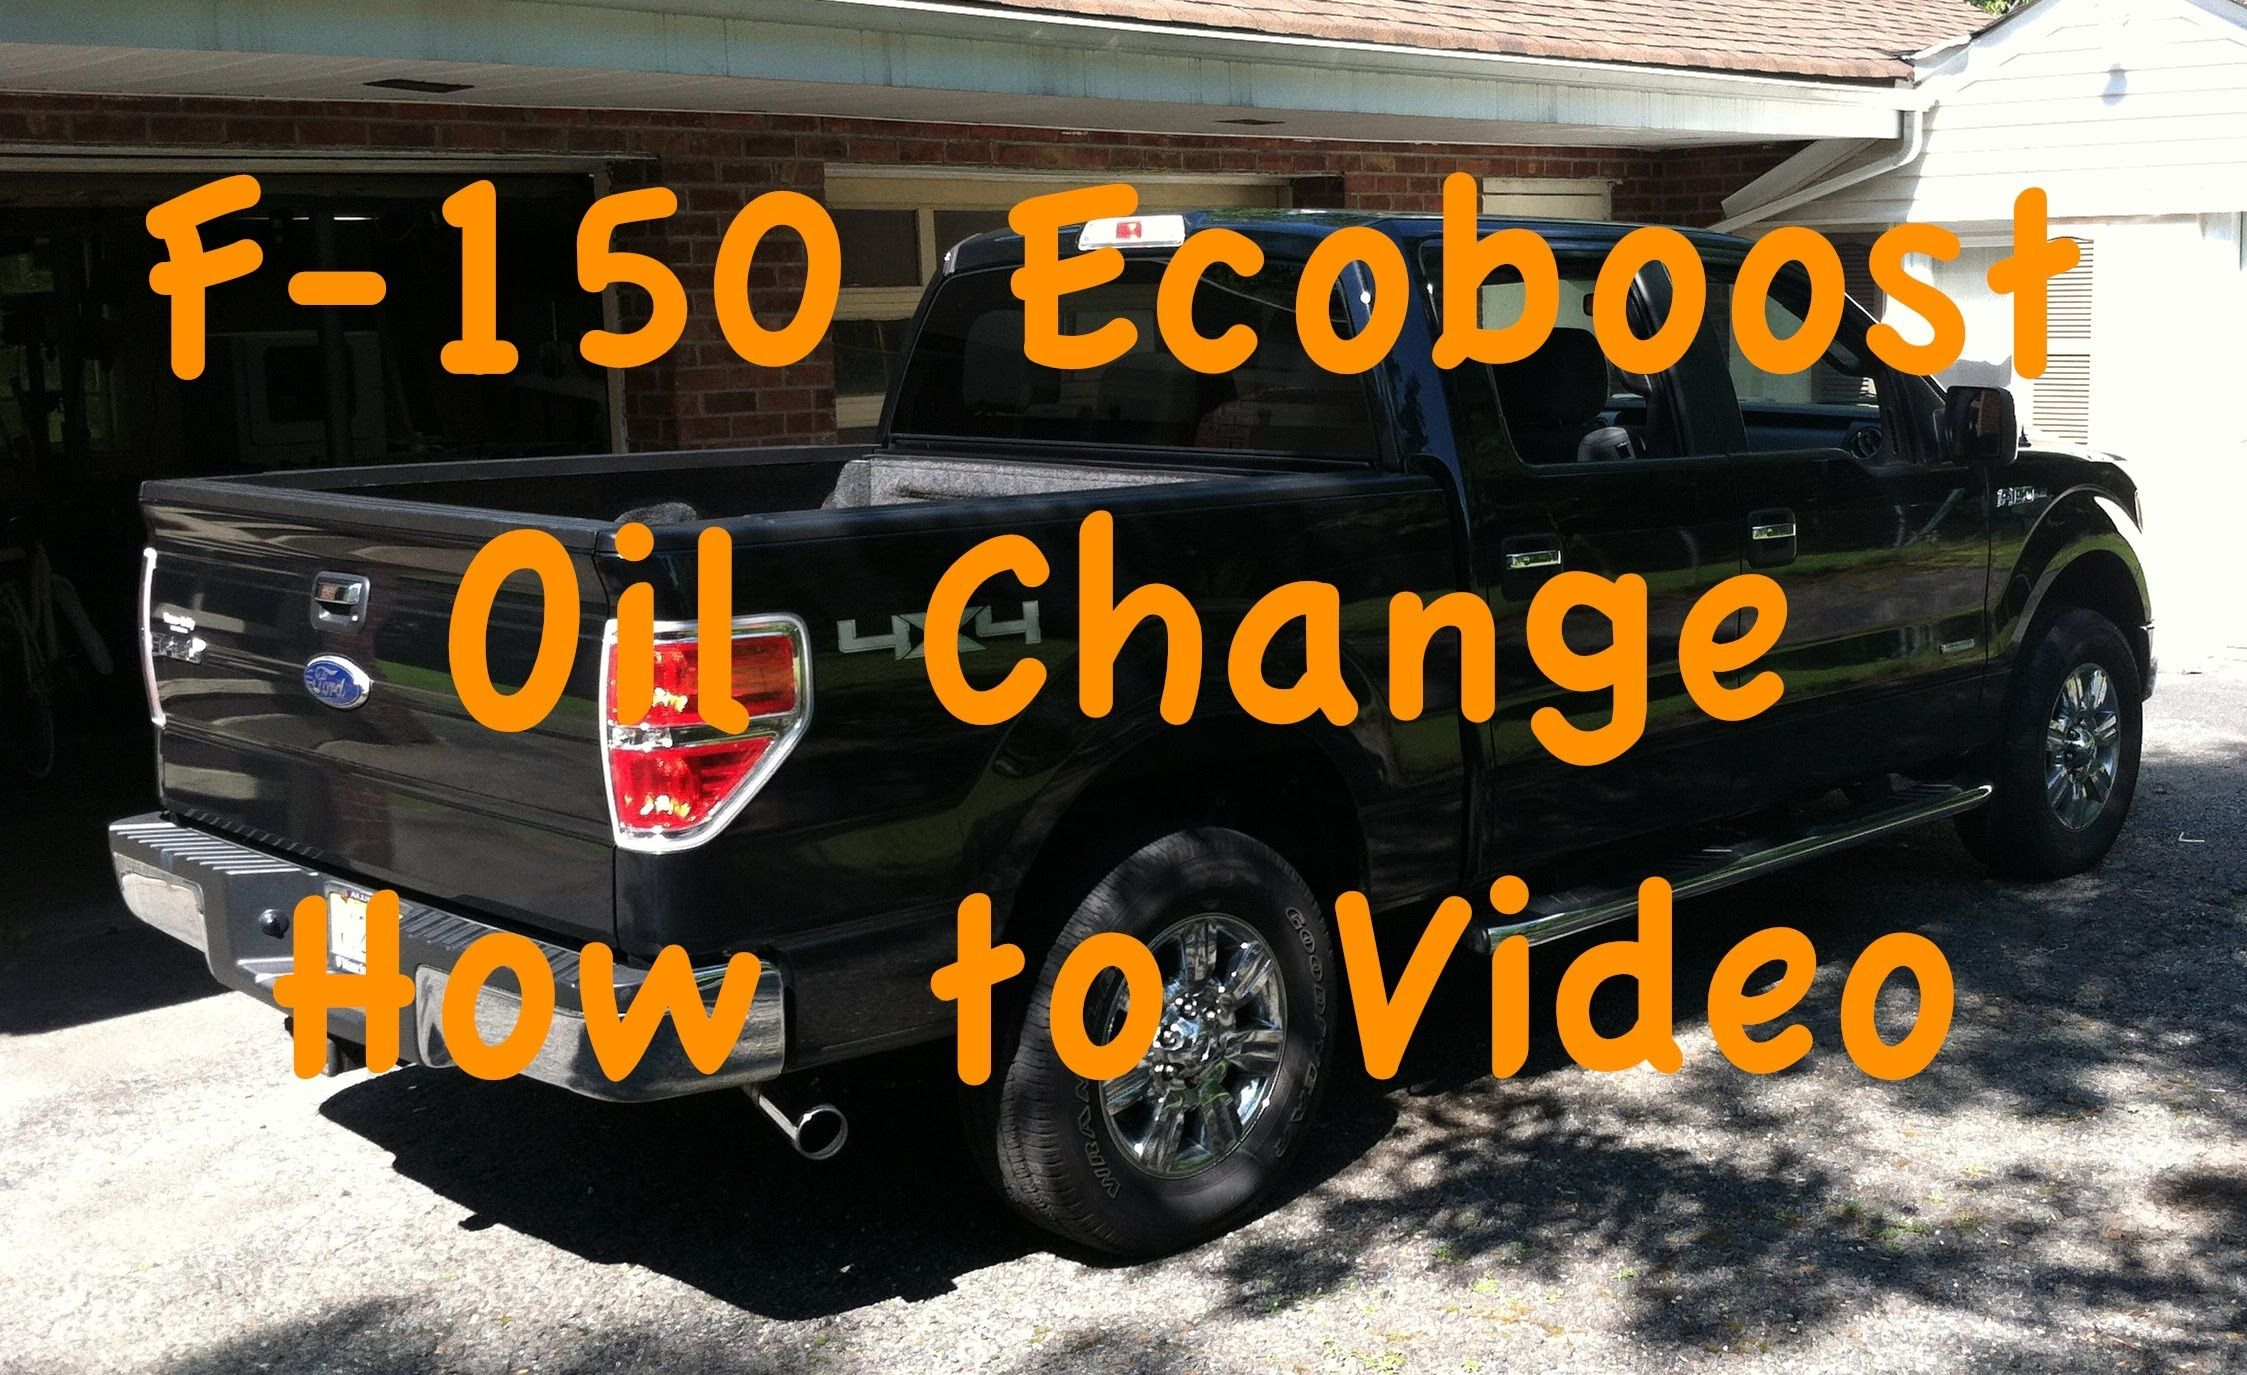 F 150 Ecoboost Oil Change How To Video Oil Change Best Oils Oils